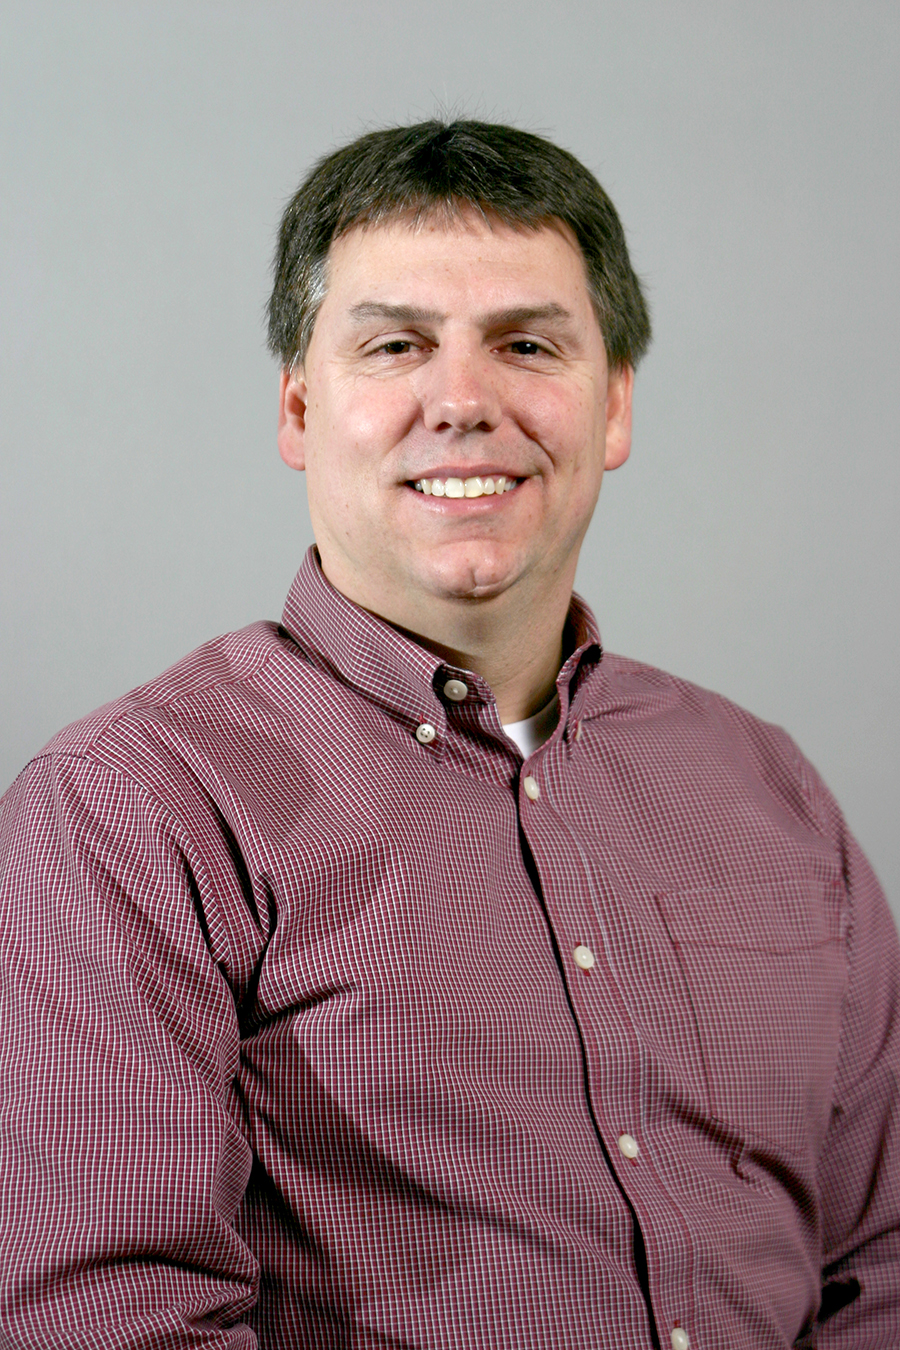 Sean Clark, Civil/Highway Technician Instructor